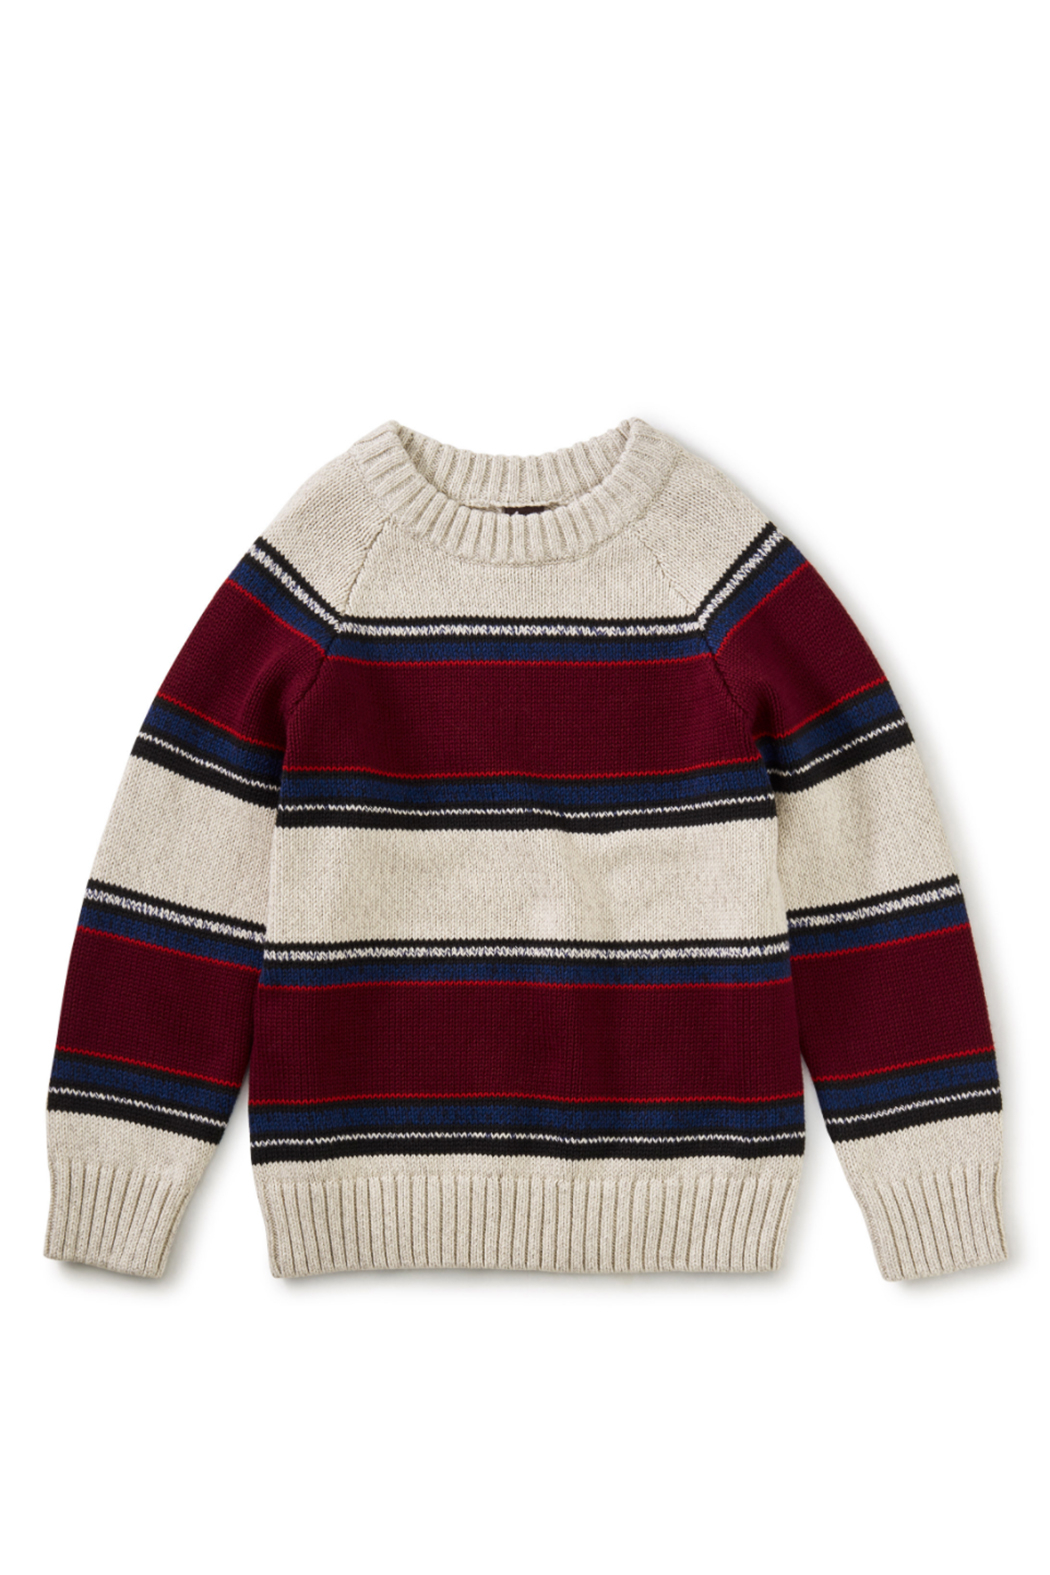 Tea Collection Striped Crew Neck Sweater - Front Full Image